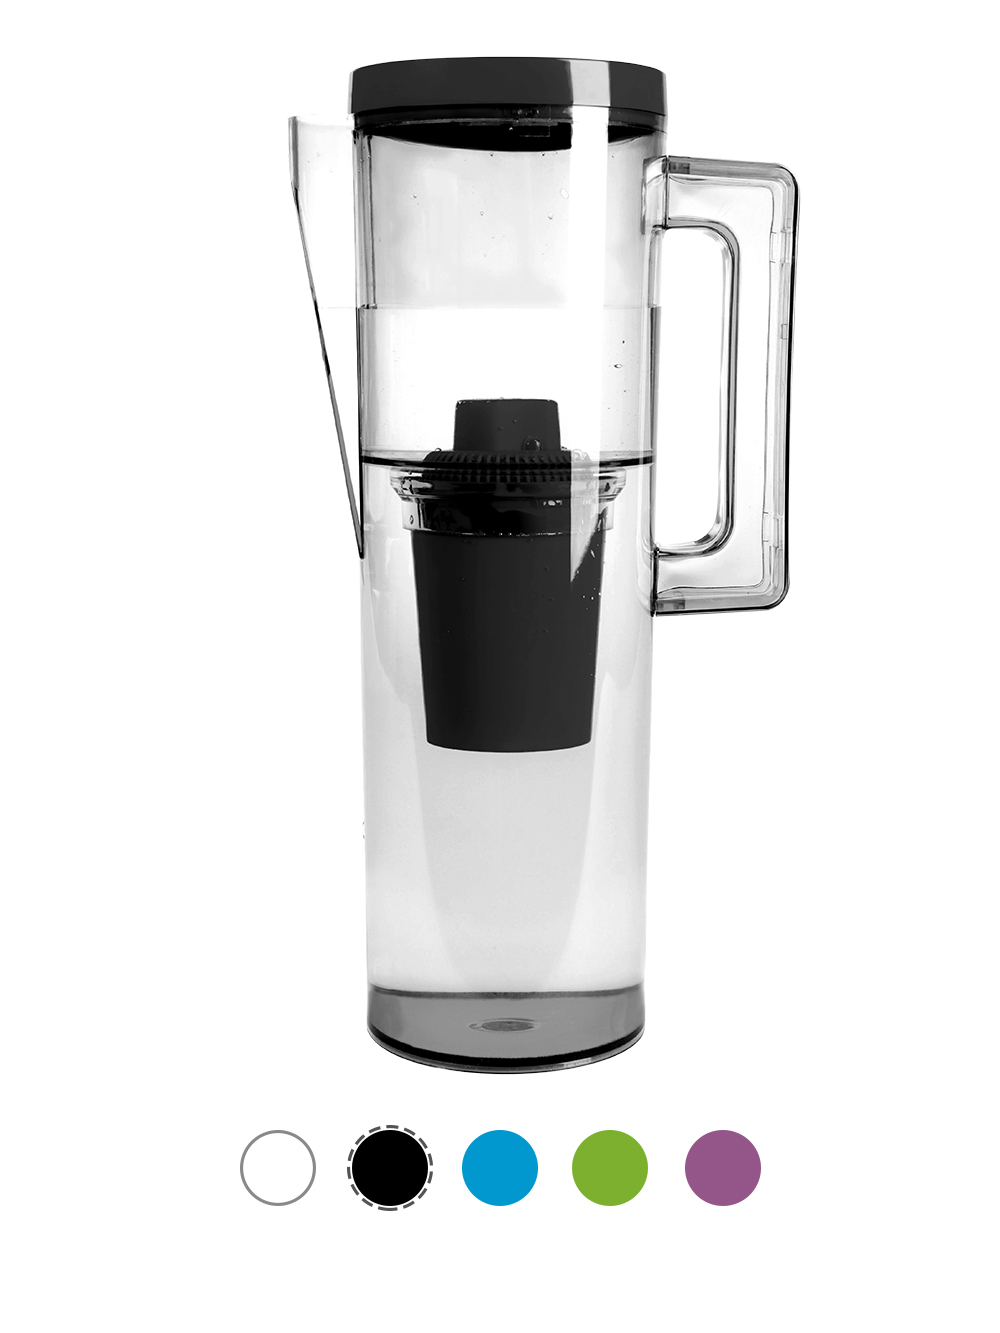 2.5l-water-filter-pitcher-for-refridgator-door-4_1501732528.jpg